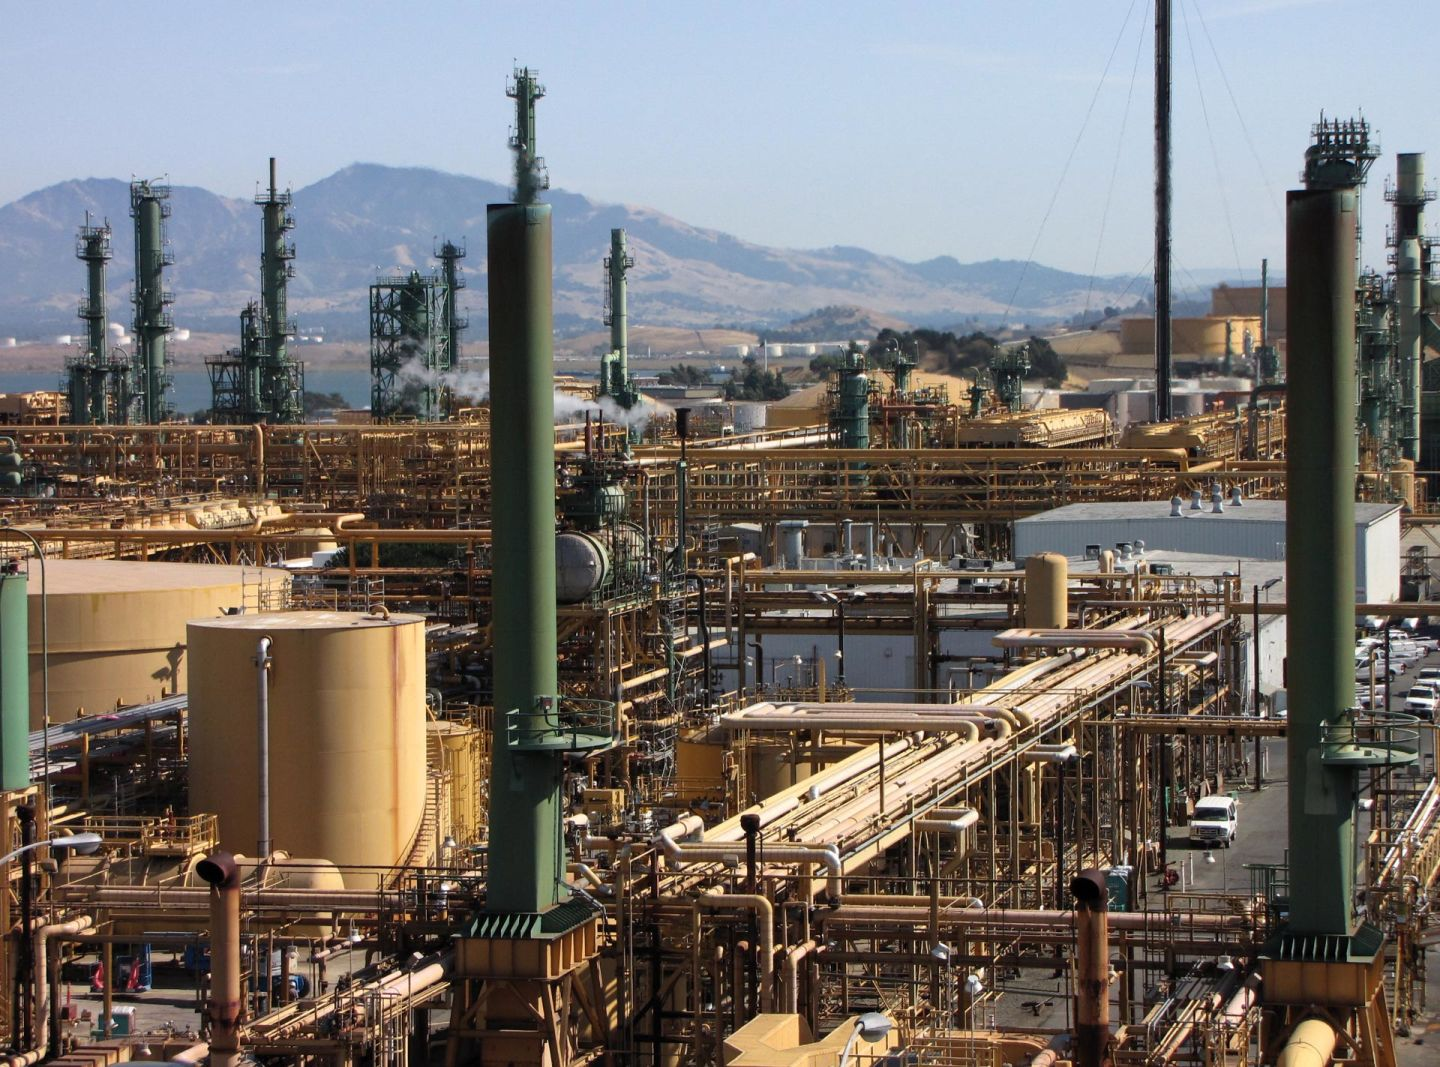 San Antonio-based Valero Corp. is the nation's biggest refiner. The Benicia refinery is one of two the company operates in California.